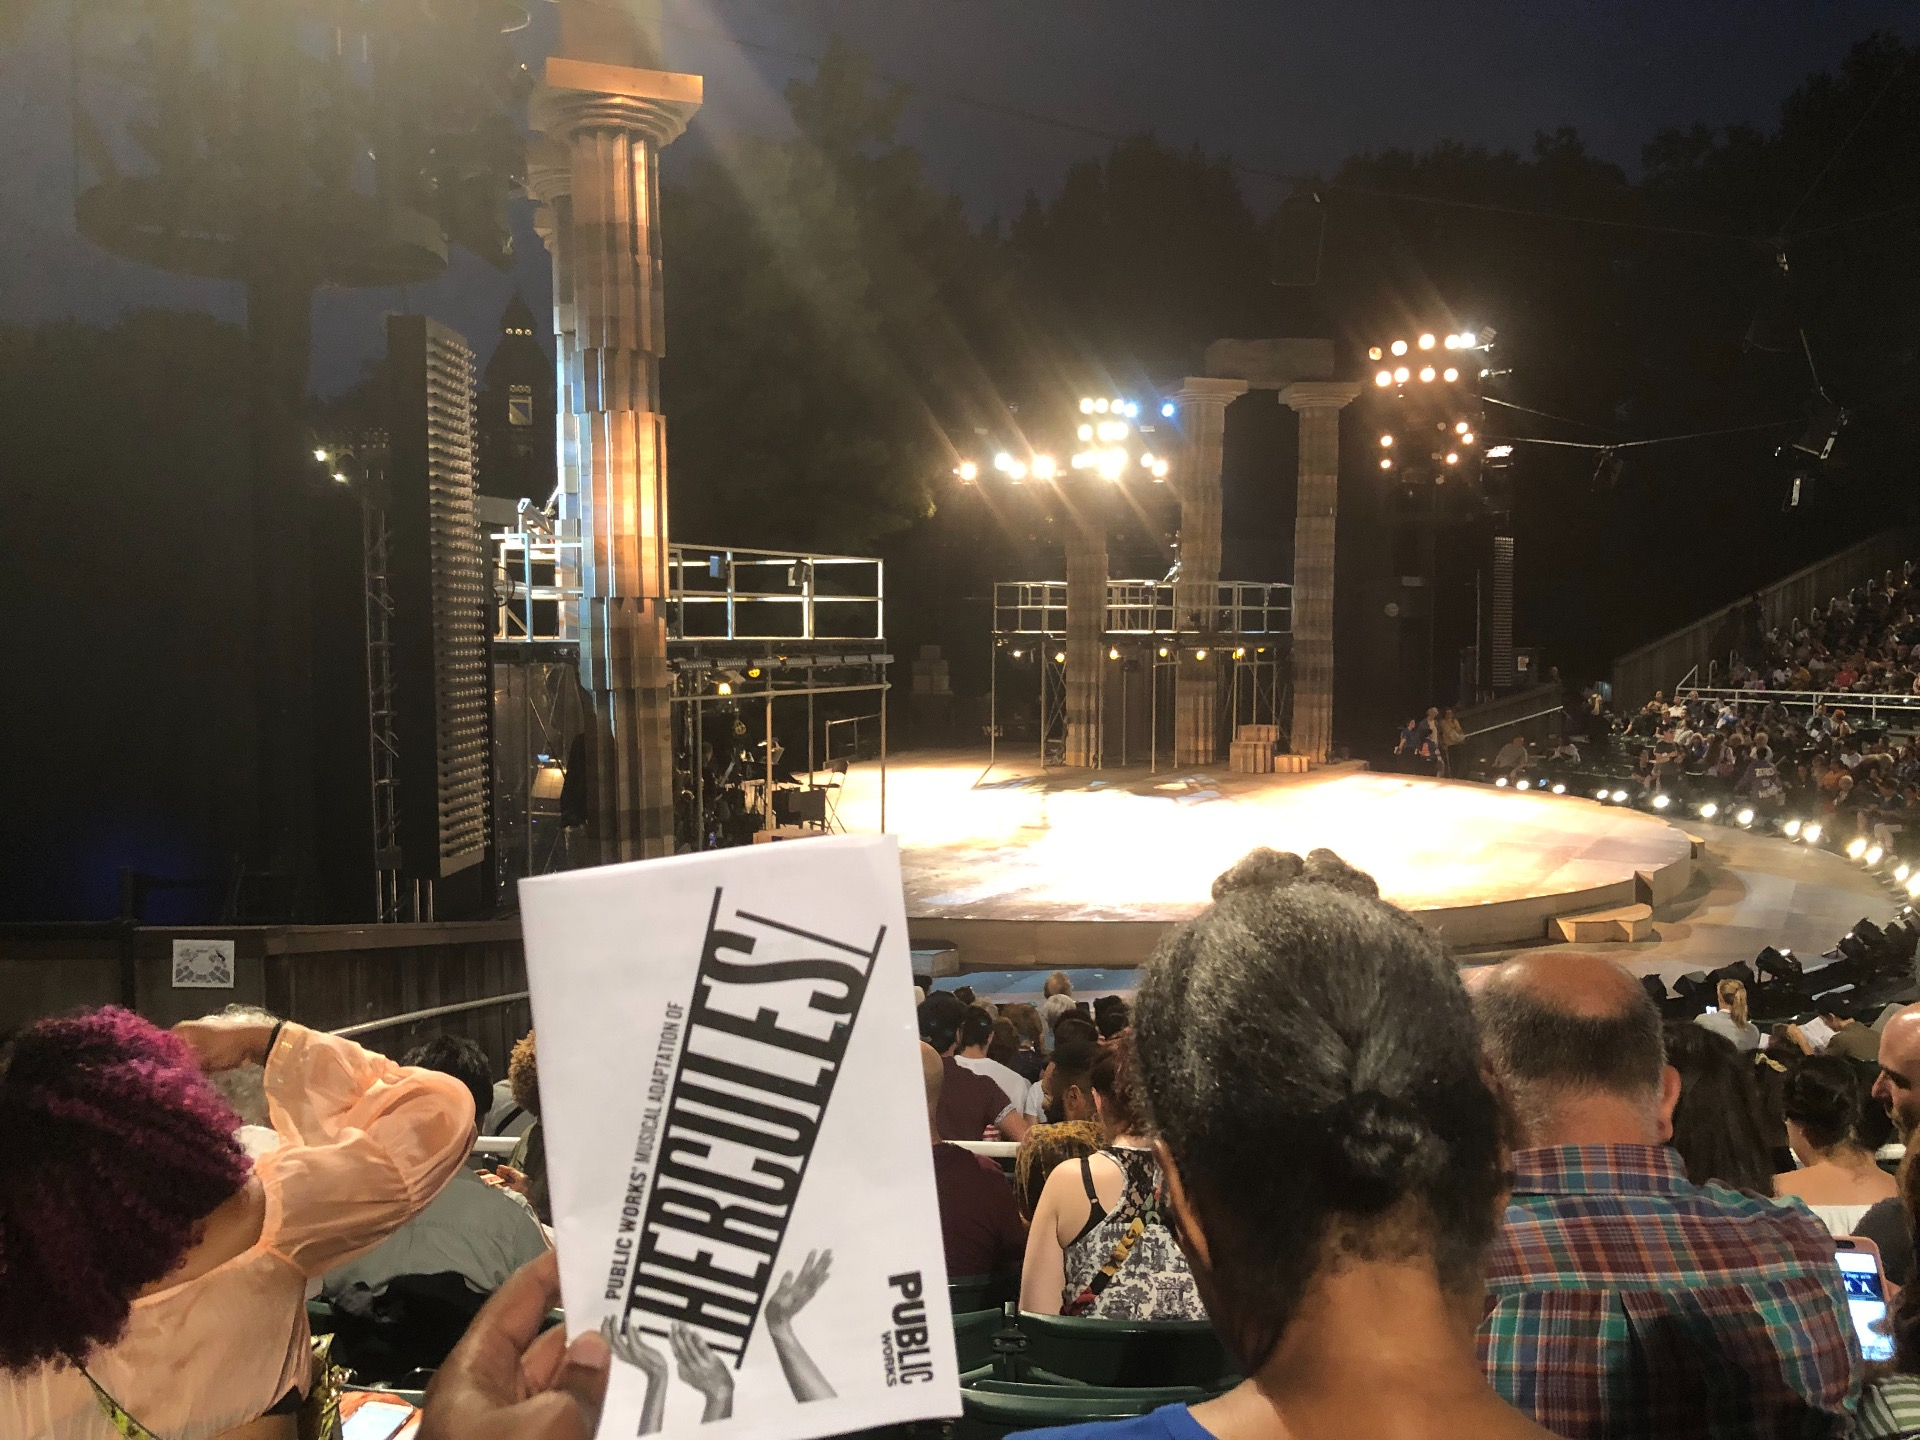 The Delacorte Theater in Central Park Section O Row N Seat 511